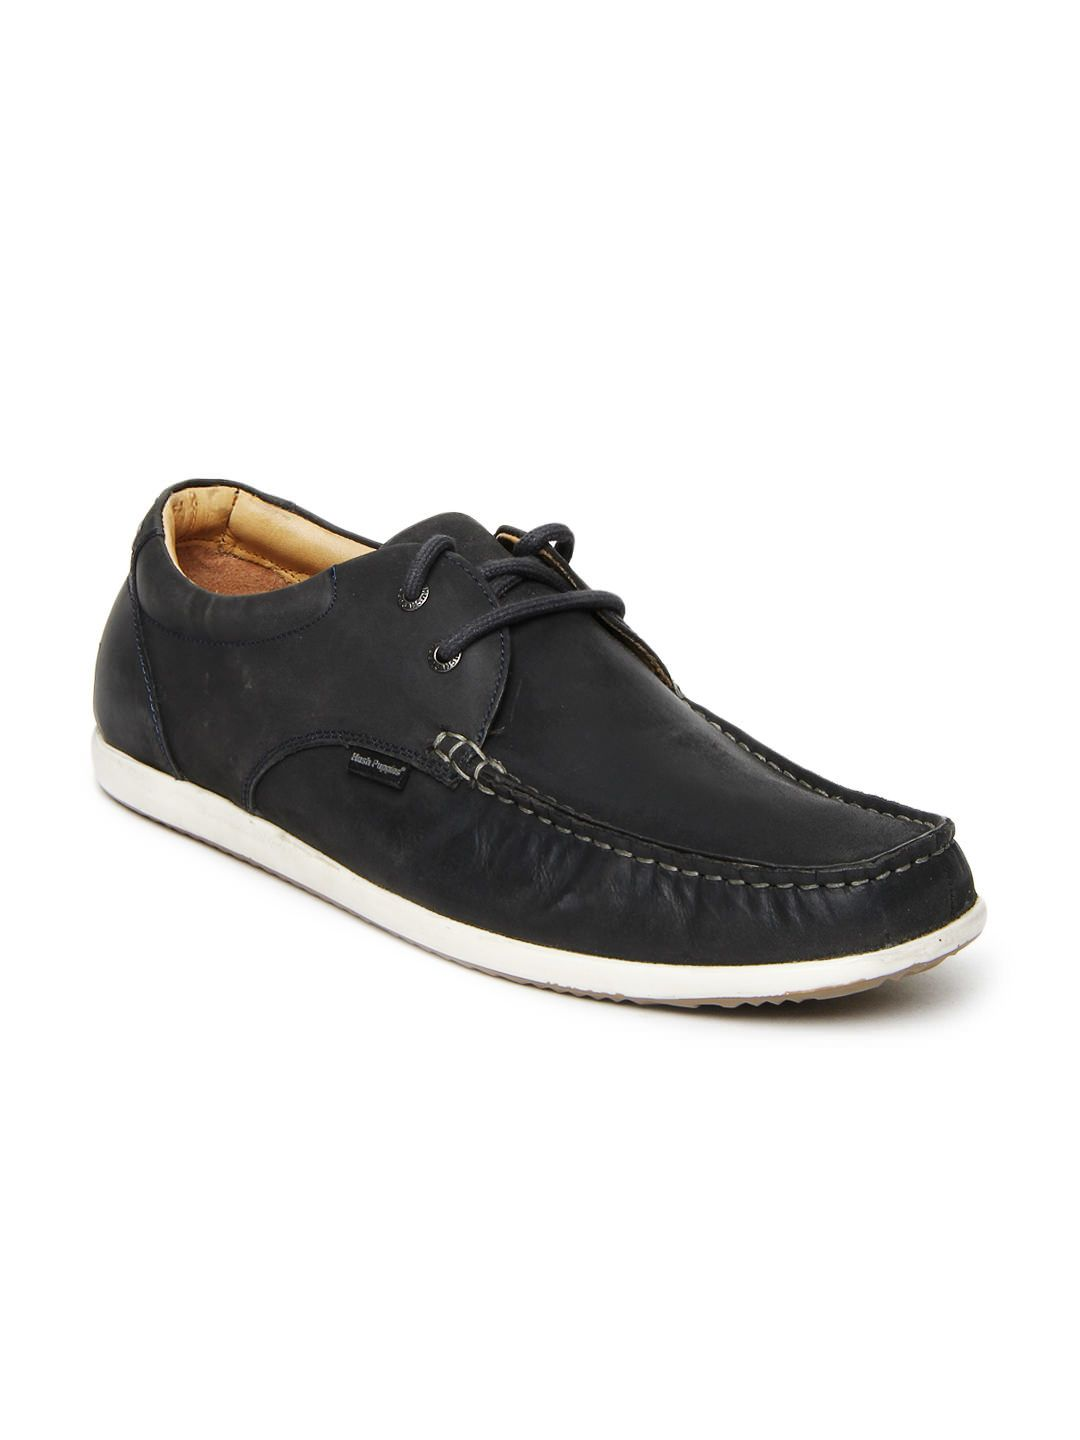 hush puppies shoes 2019